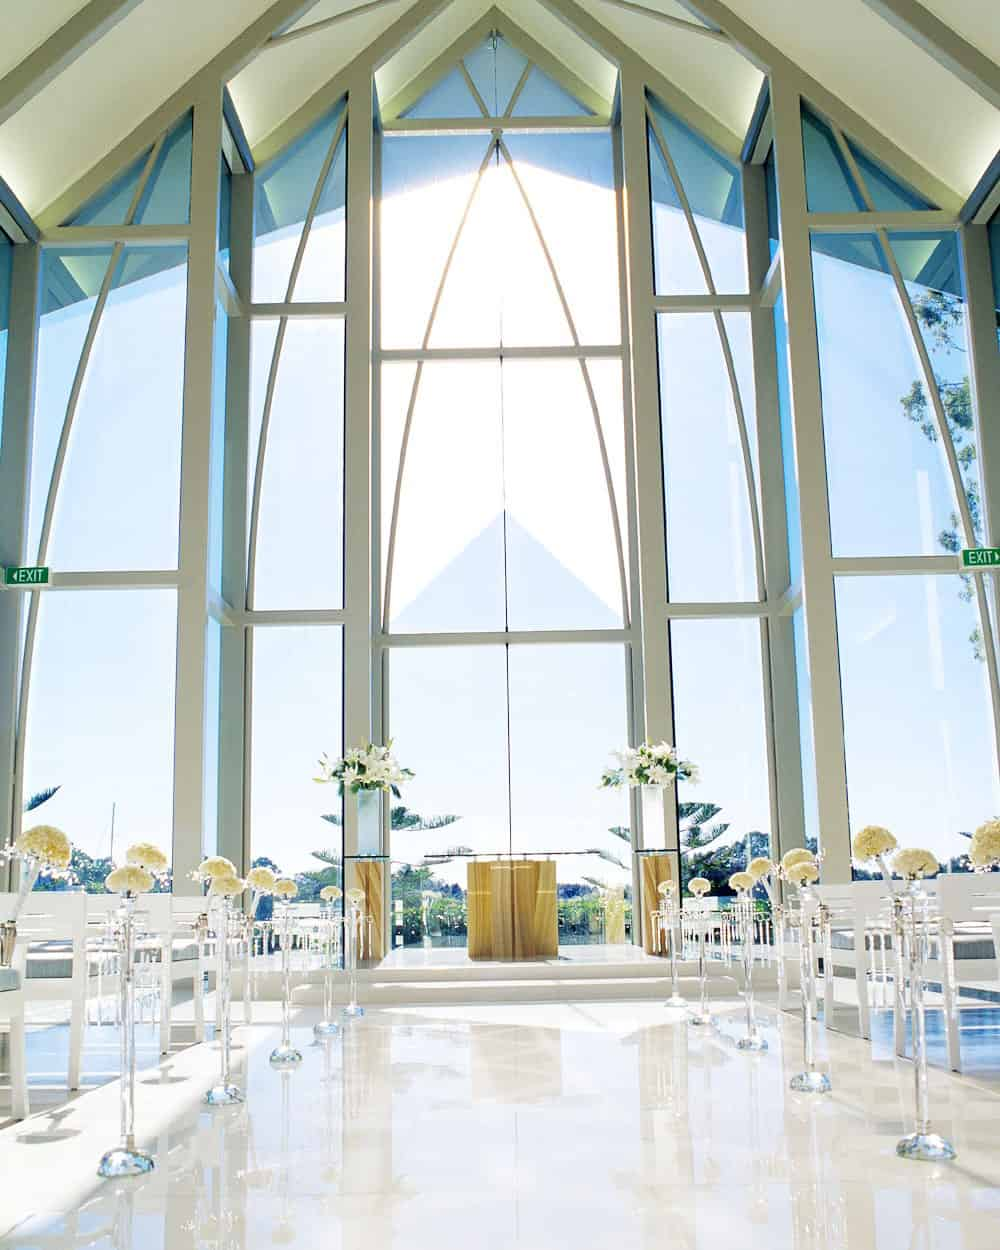 glass chapel at Intercontinental Sanctuary Cove